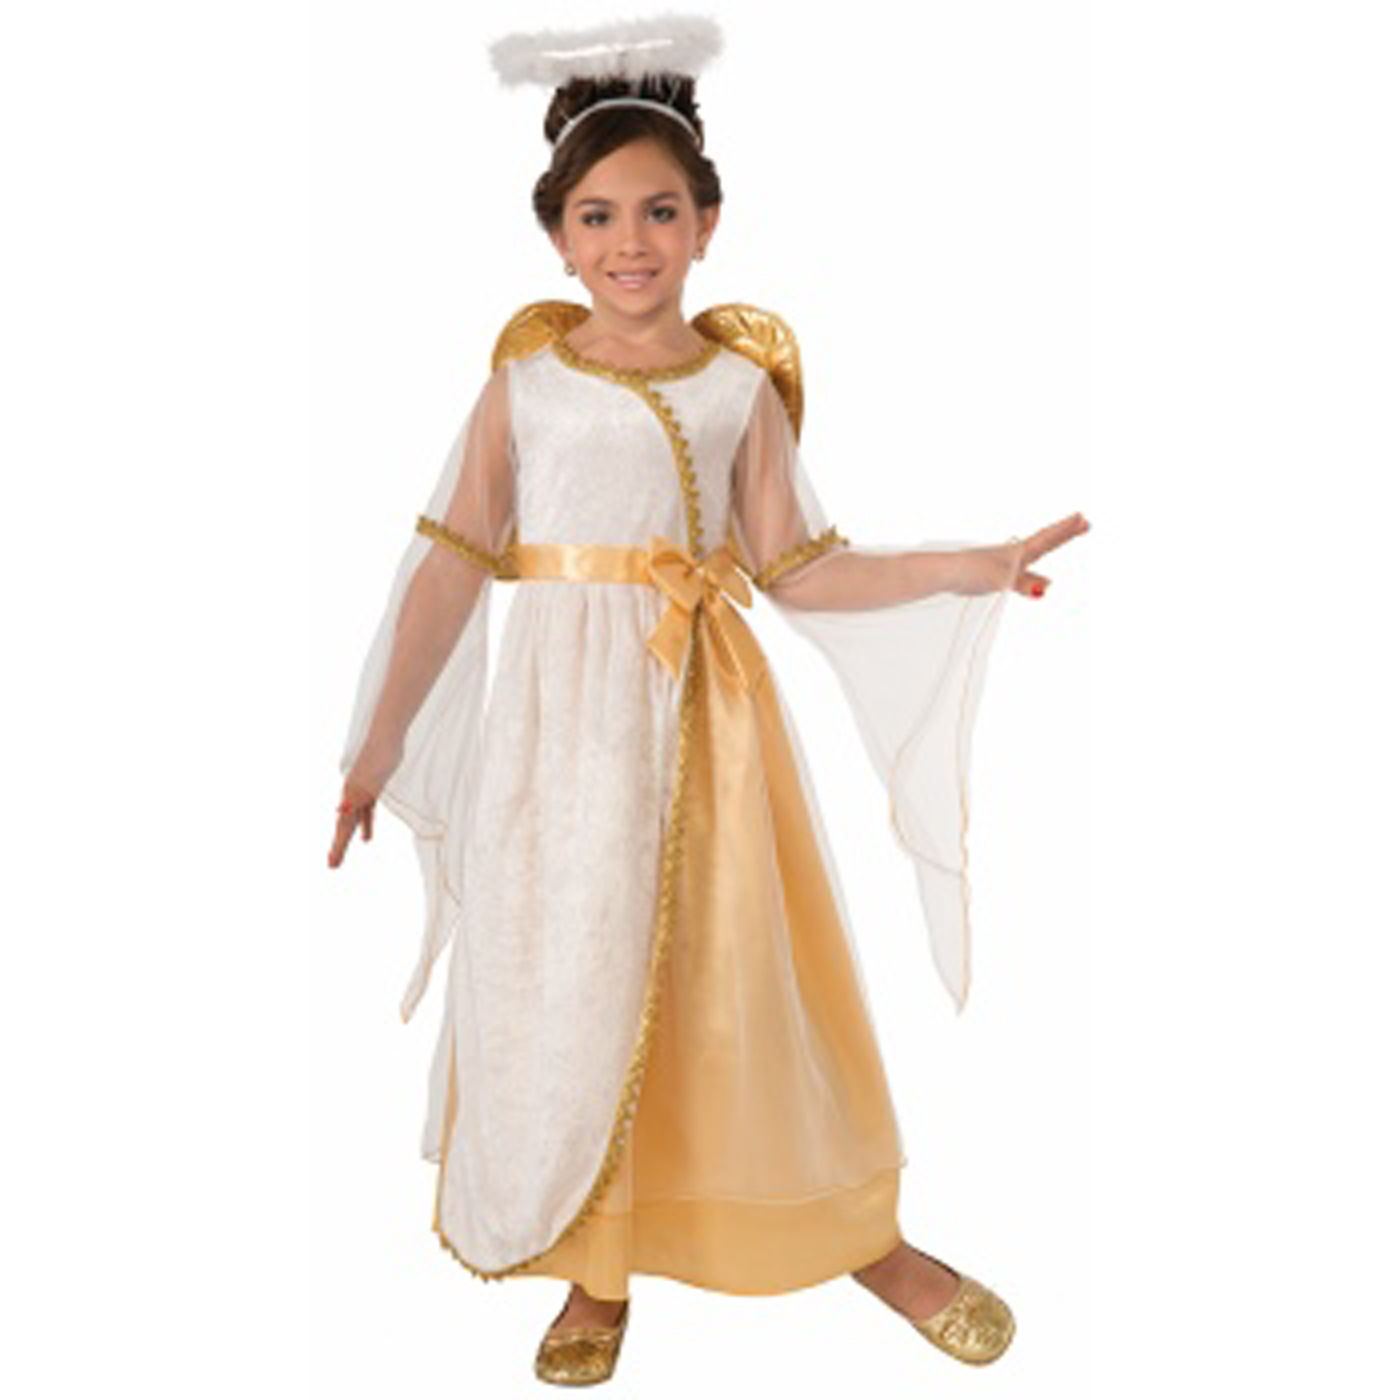 Spirit Of Christmas Past Costume.Details About Golden Angel Girls Child Holiday Play Christmas Spirit Costume